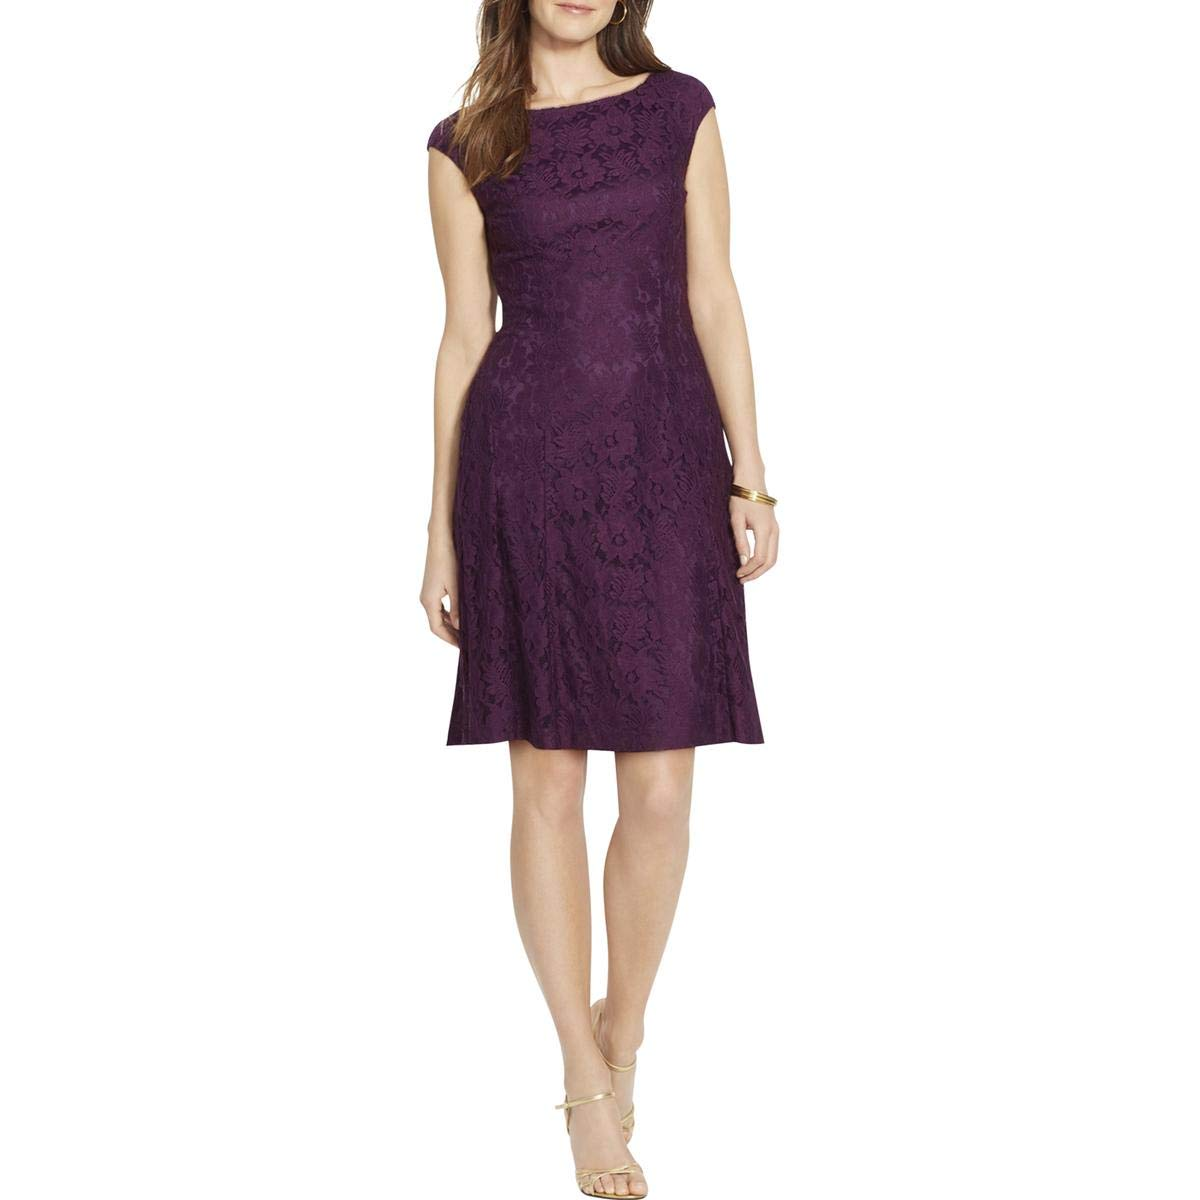 750ee0d7 American Living $99 Womens New 1253 Purple Floral Lace A-Line Dress 2 B+B  at Amazon Women's Clothing store: